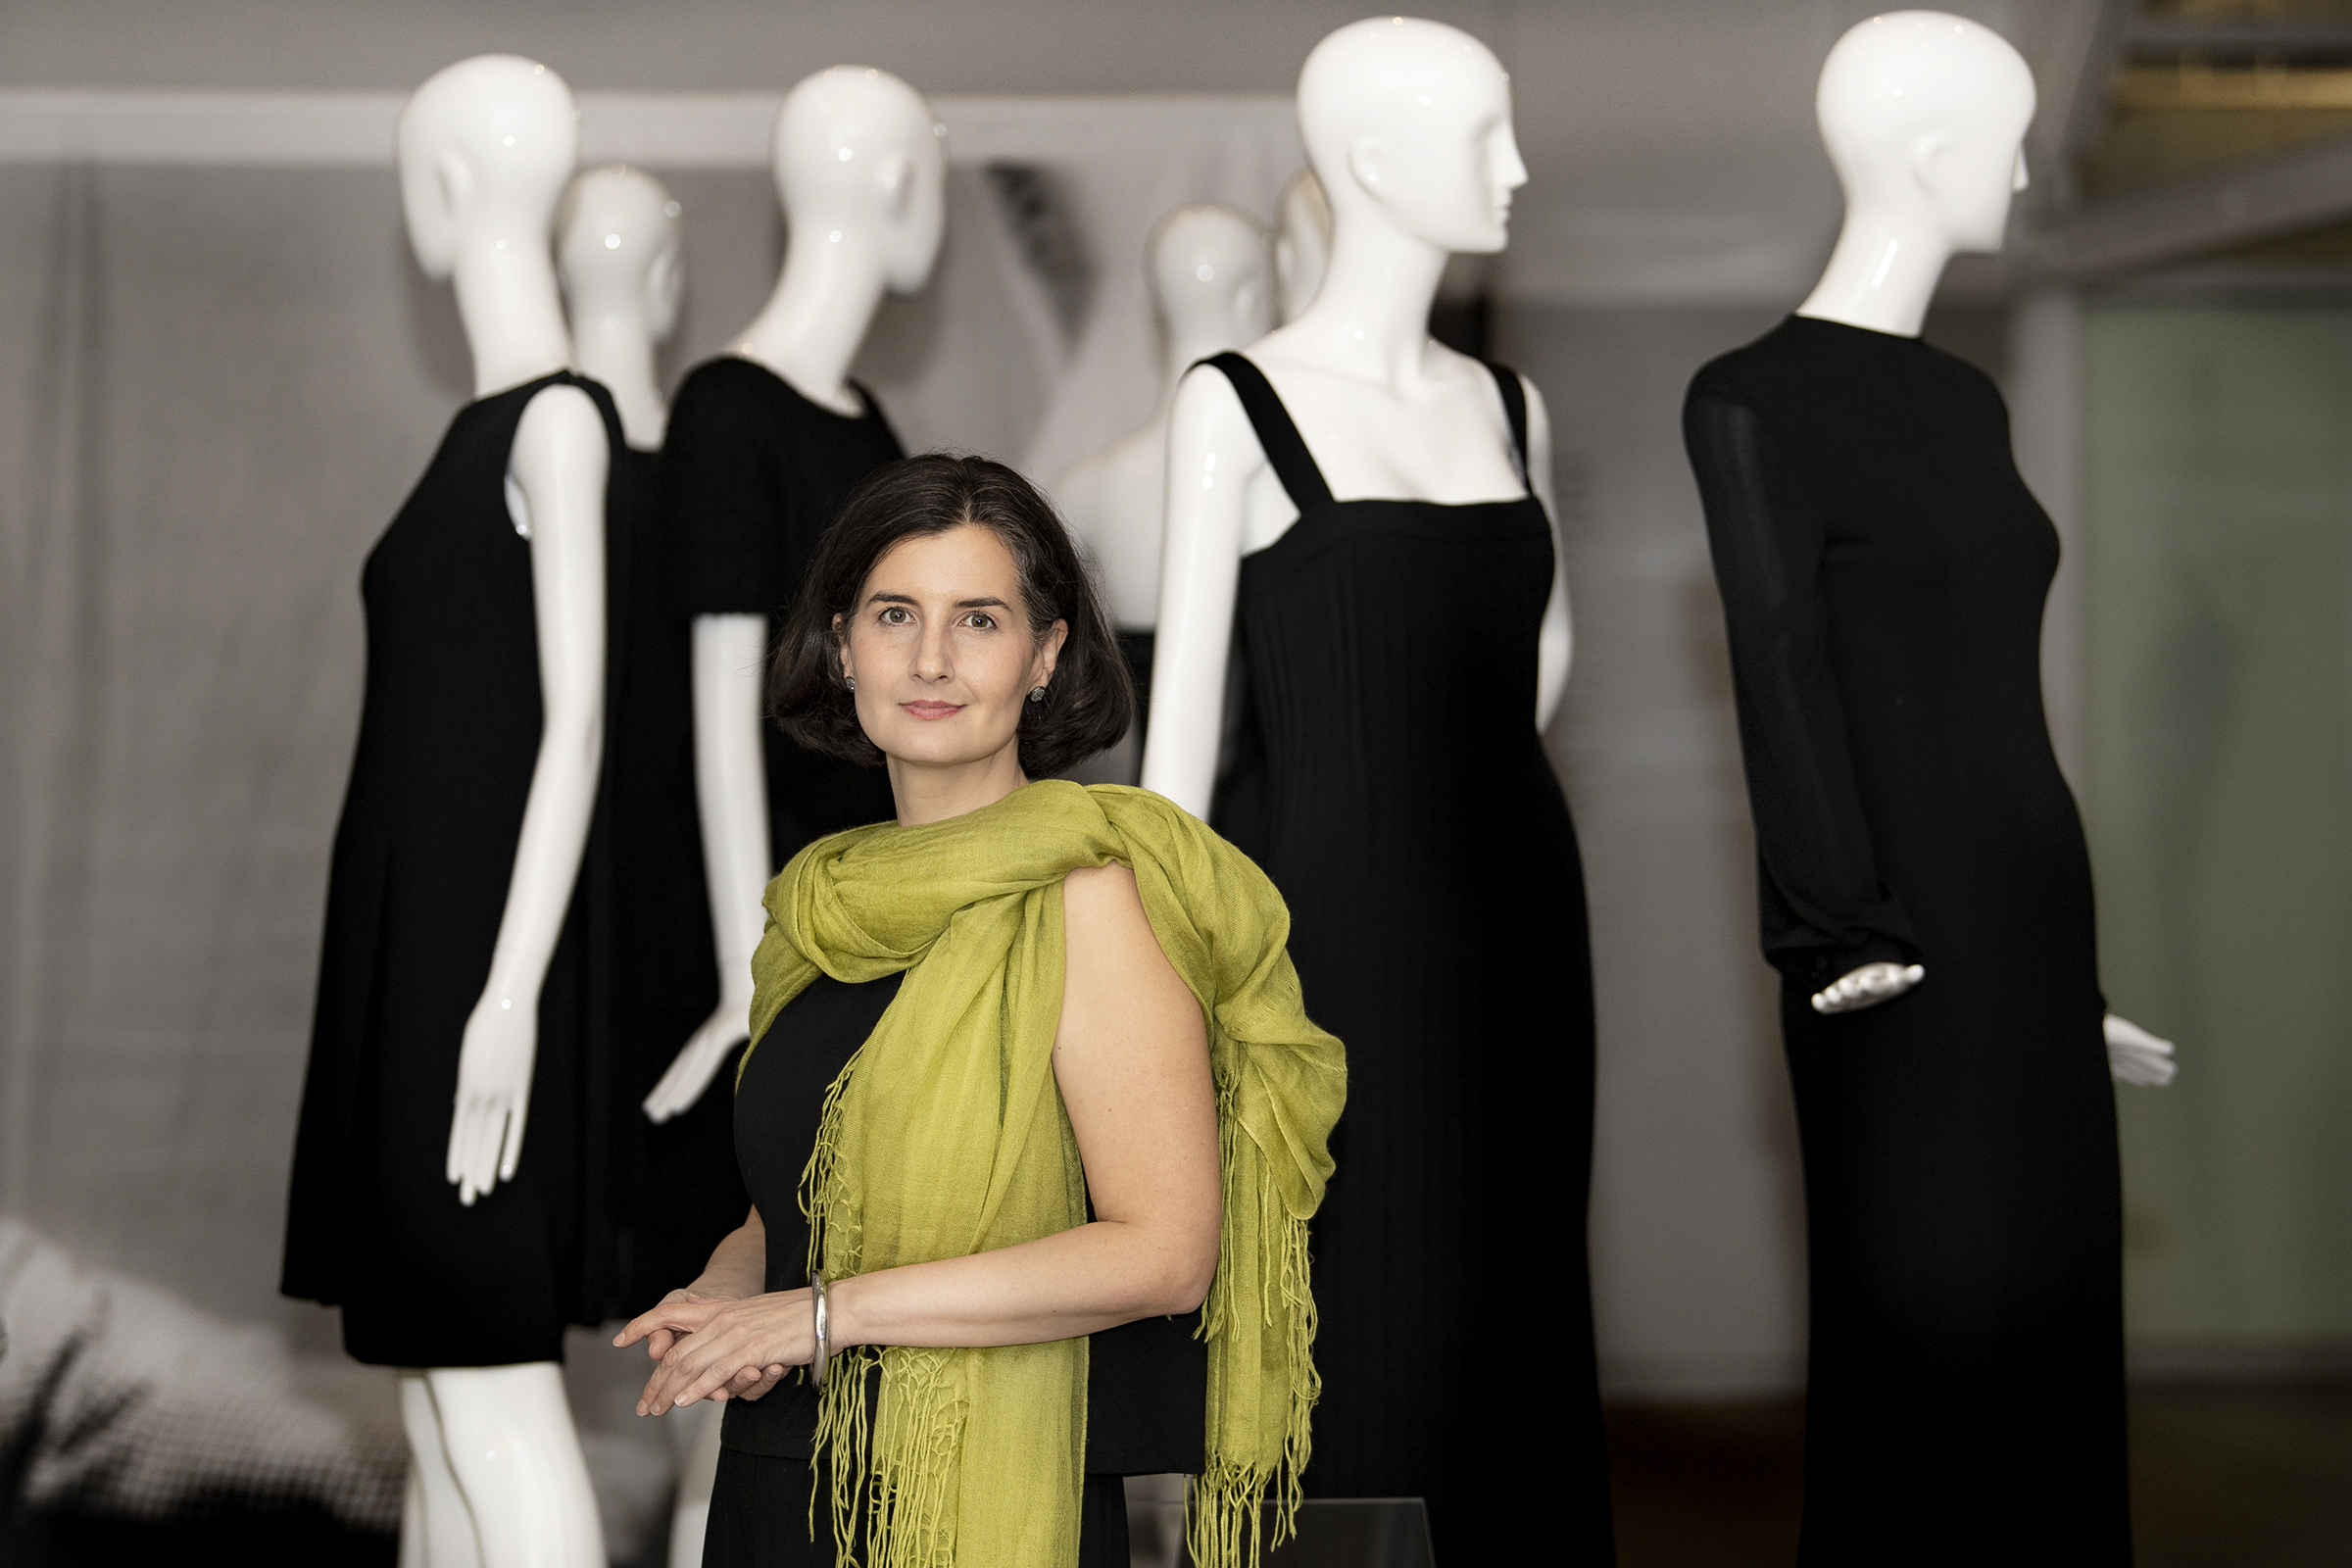 Clare Sauro, Curator, is photograph in front of couture dresses from the upcoming James Galliano´s exhibit at Drexel University´s Pearlstein Gallery in Philadelphia, Pa. Thursday, October,18, 2018. JOSE F. MORENO / Staff Photographer